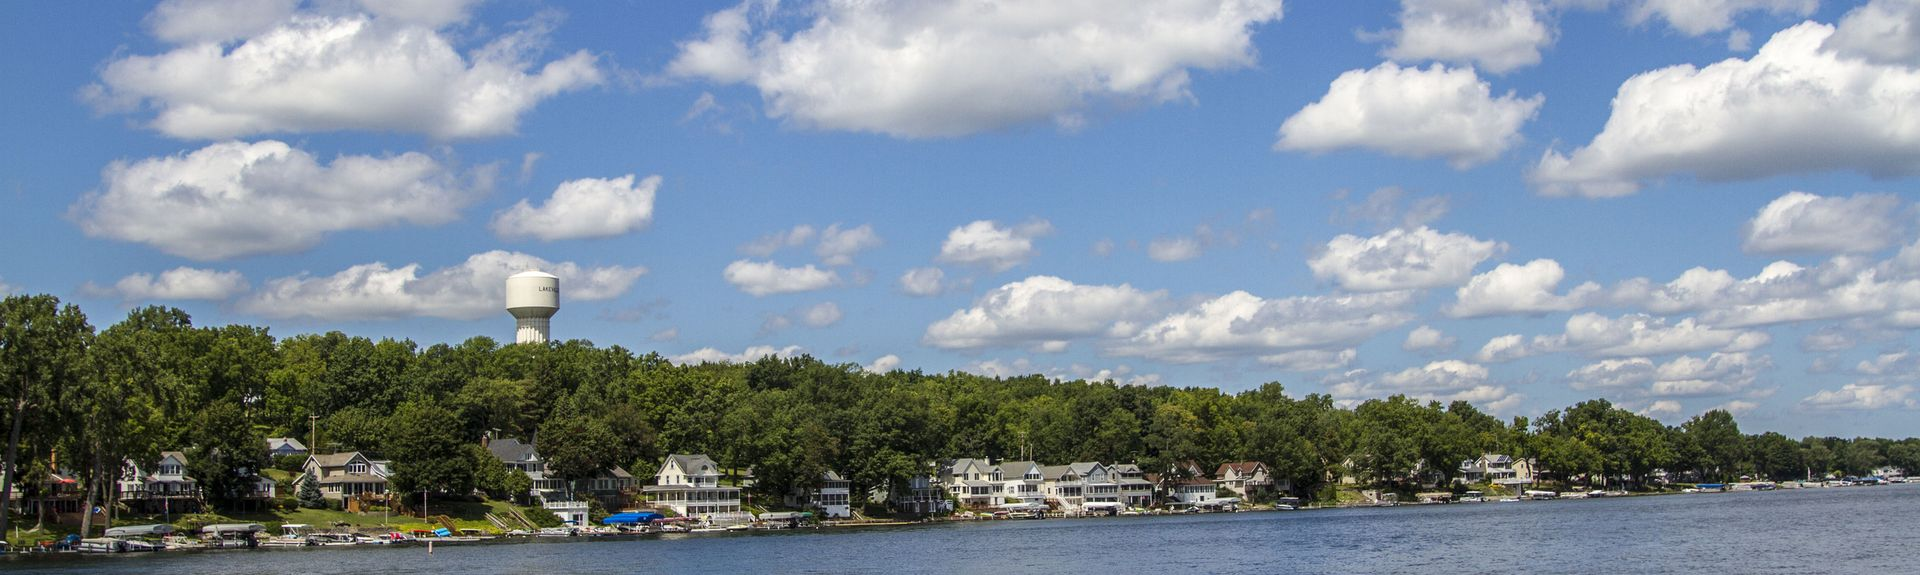 Conesus Lake, New York, United States of America